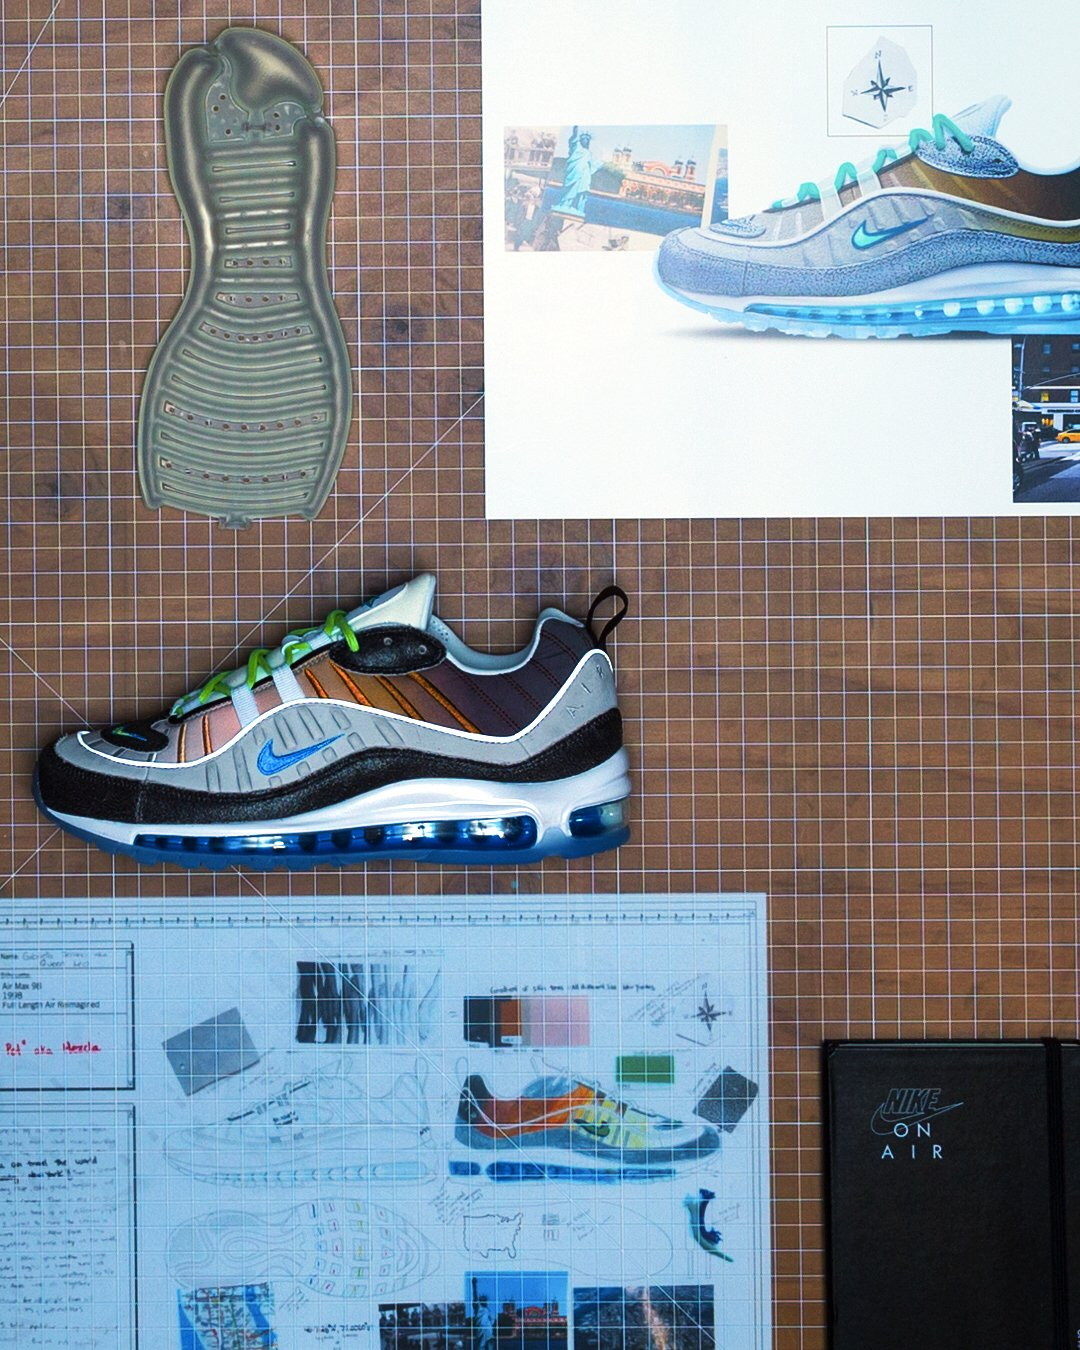 nike-on-air-contest-air-max-sample-model